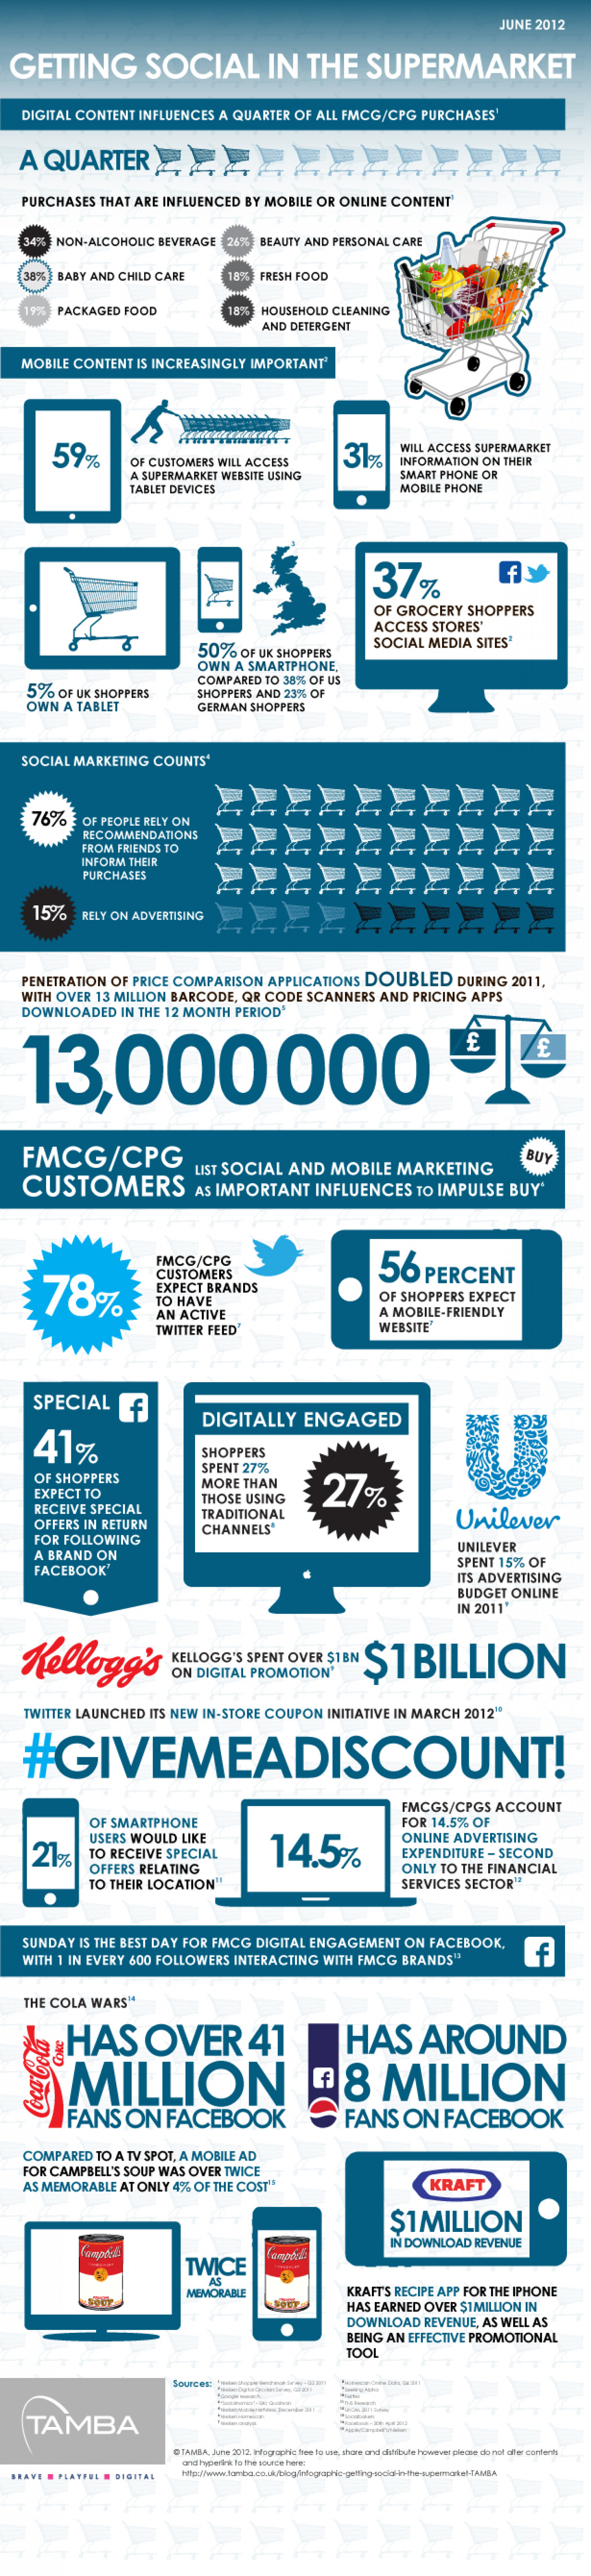 Getting Social in the Supermarket Infographic